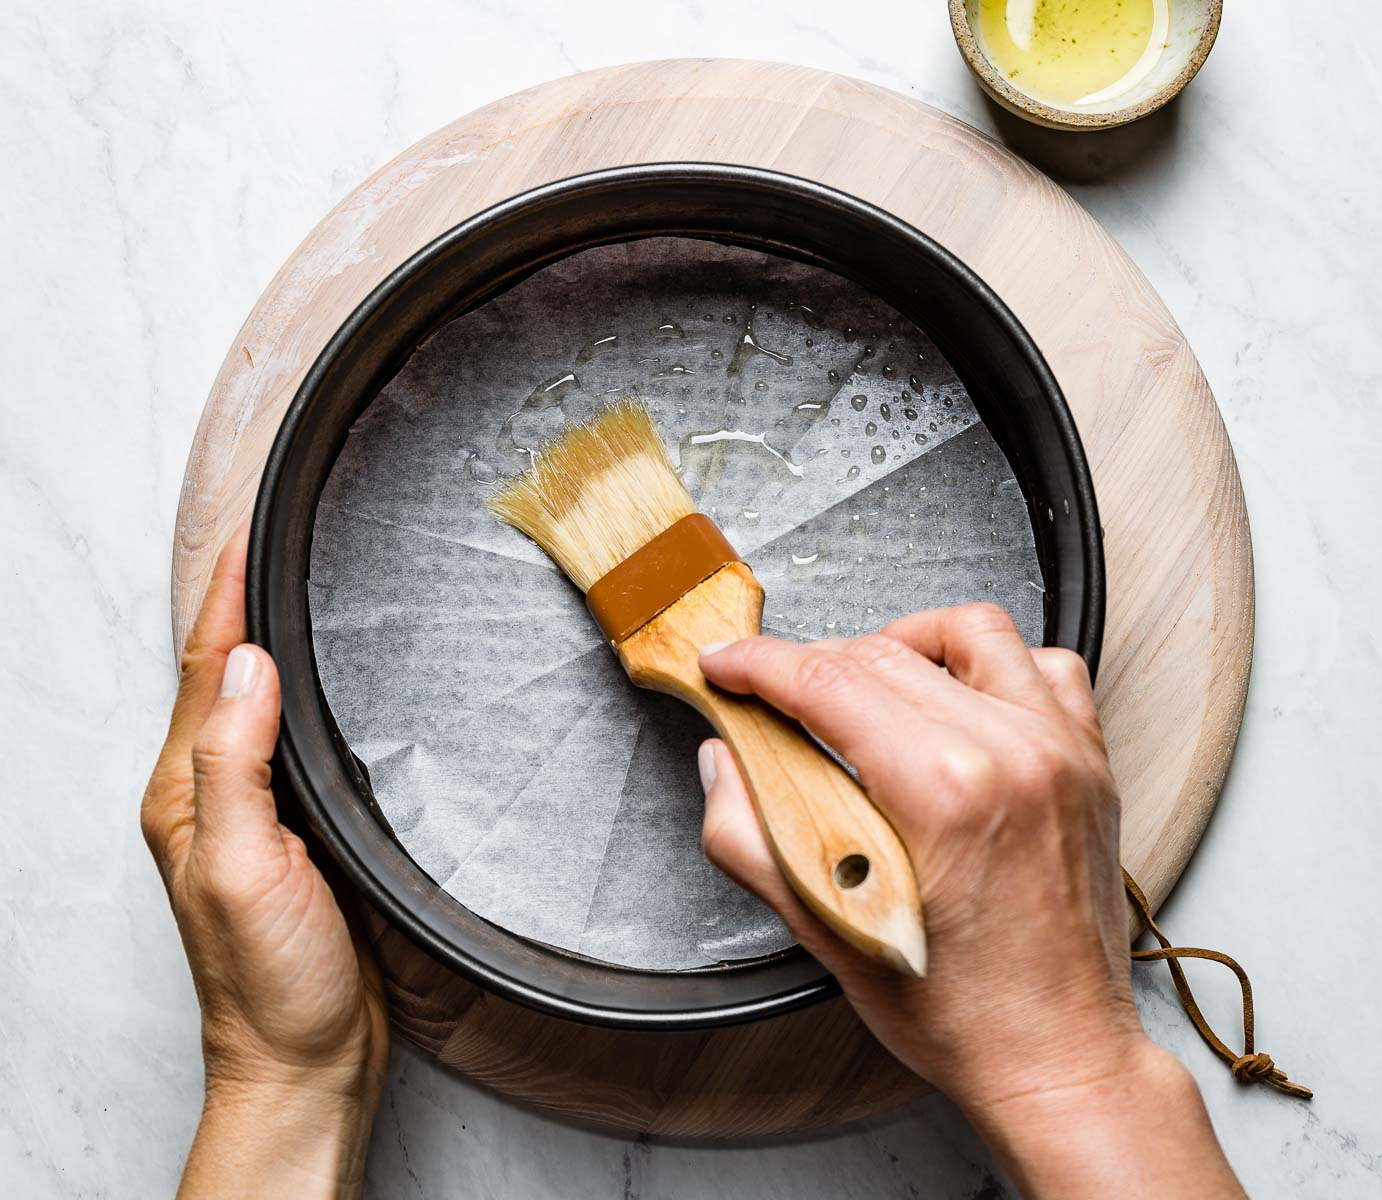 person greasing pan with oil